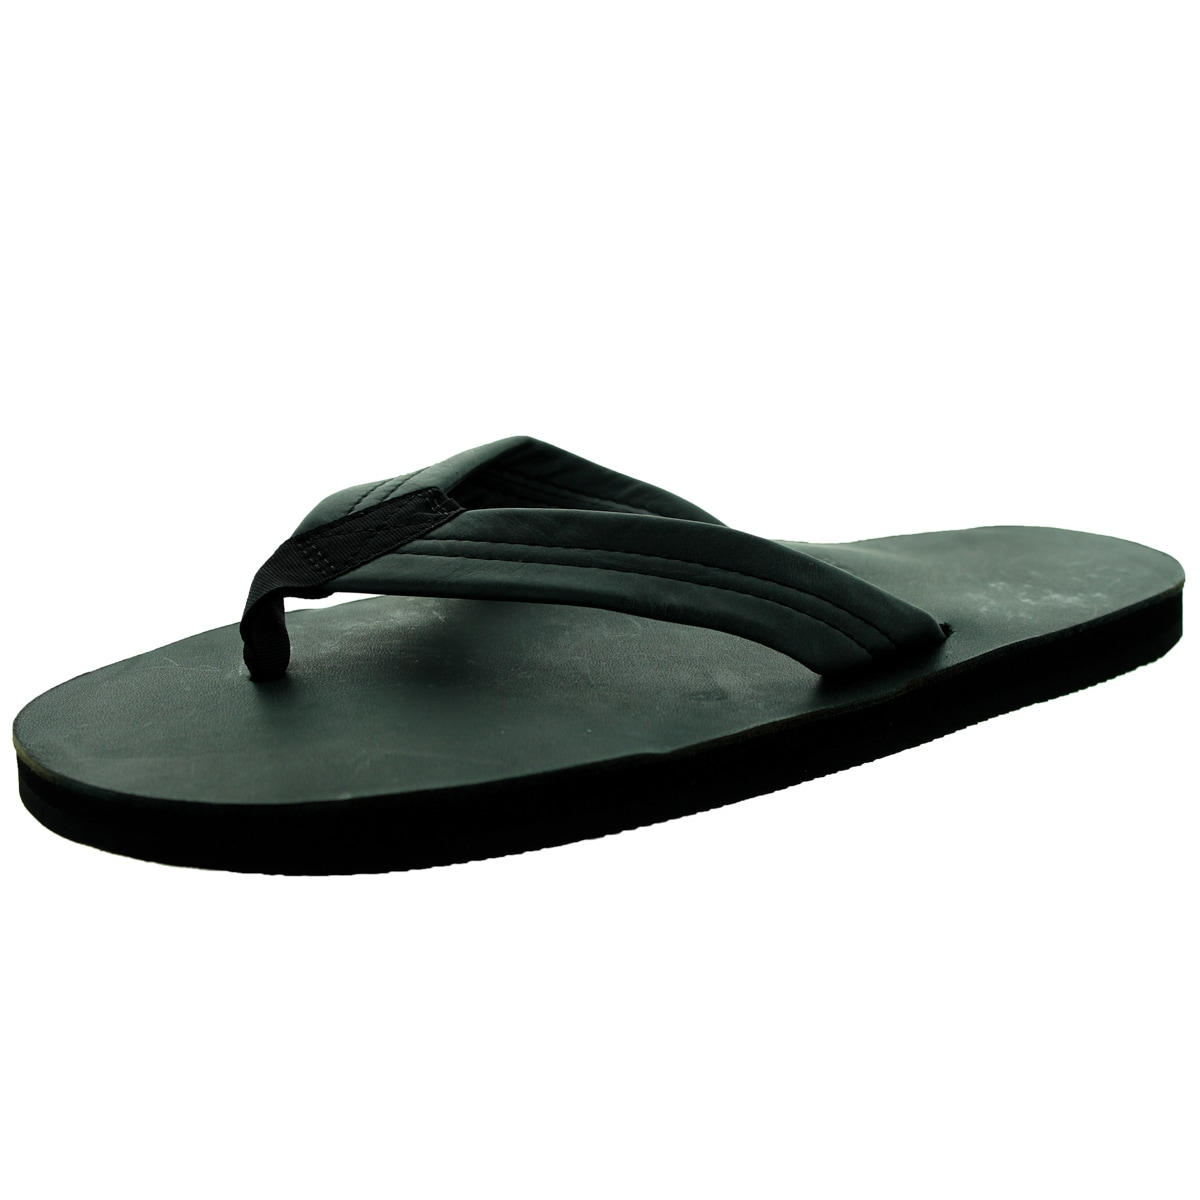 Rainbow Sandals Men's Single Layer Premier Tt Black Sanda...